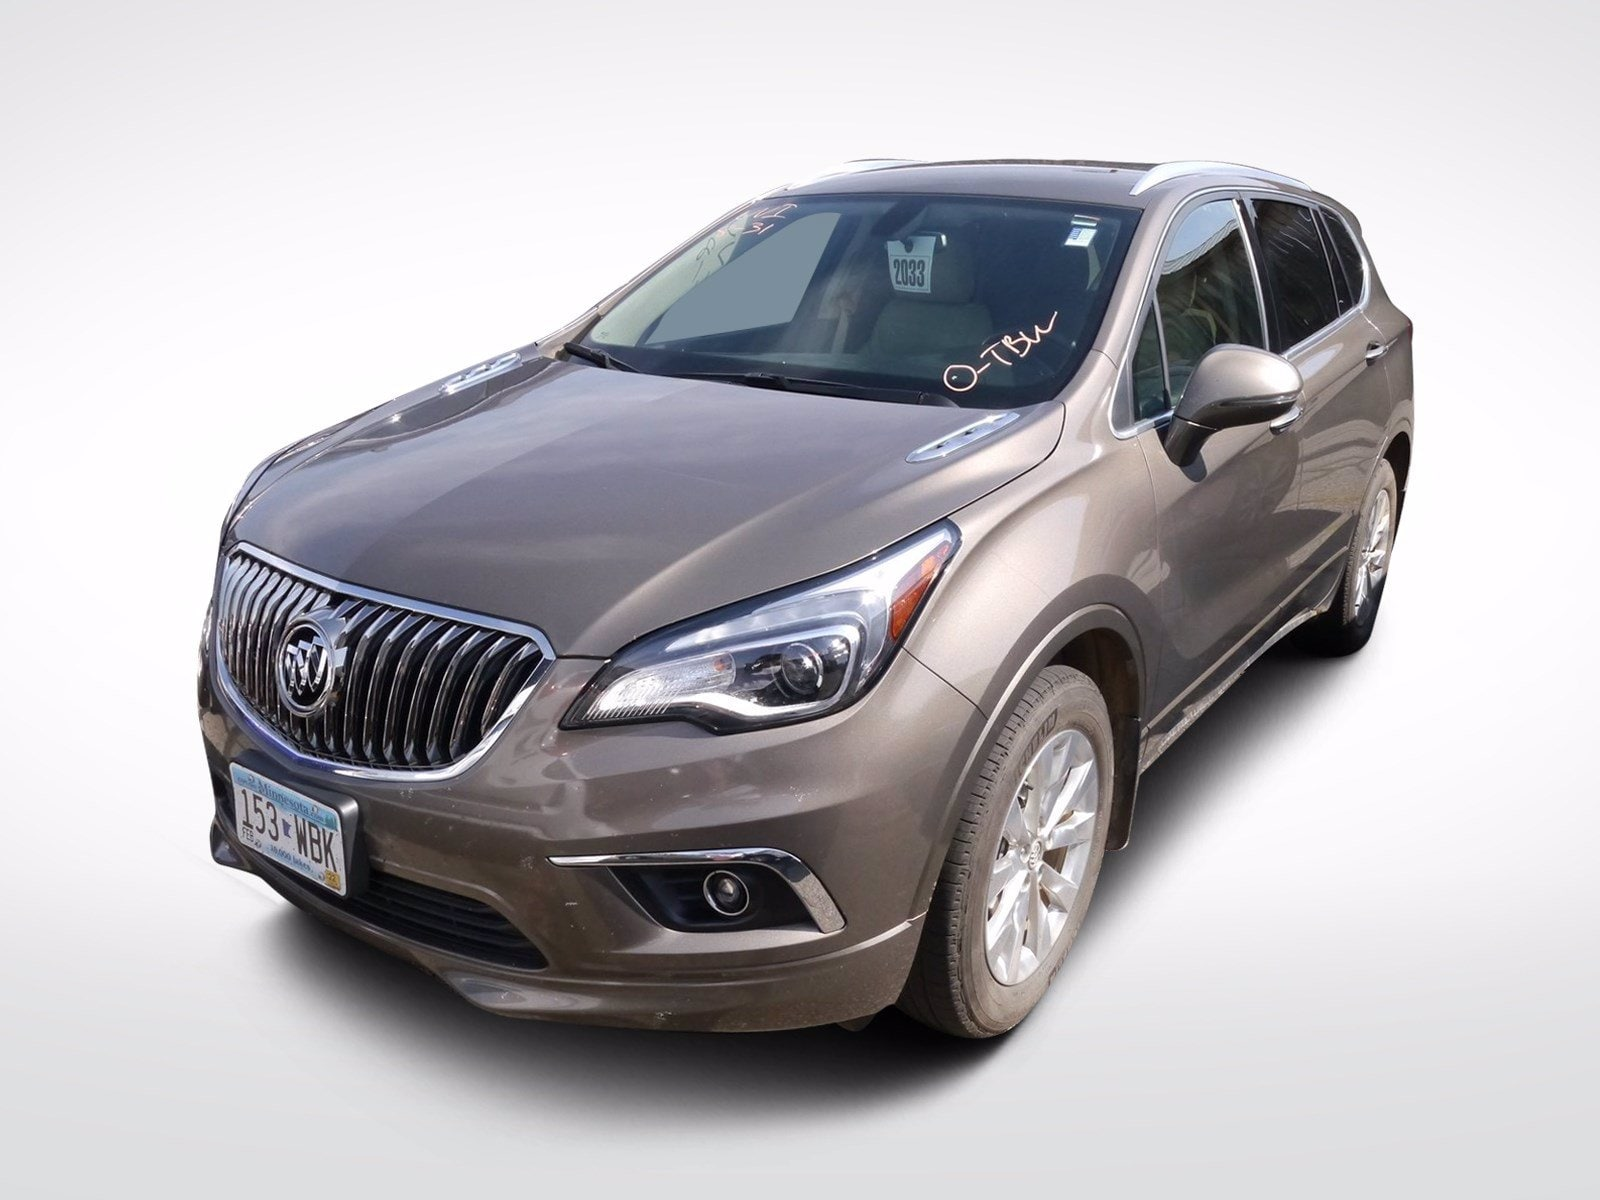 Used 2017 Buick Envision Essence with VIN LRBFXDSA2HD072811 for sale in Baxter, Minnesota